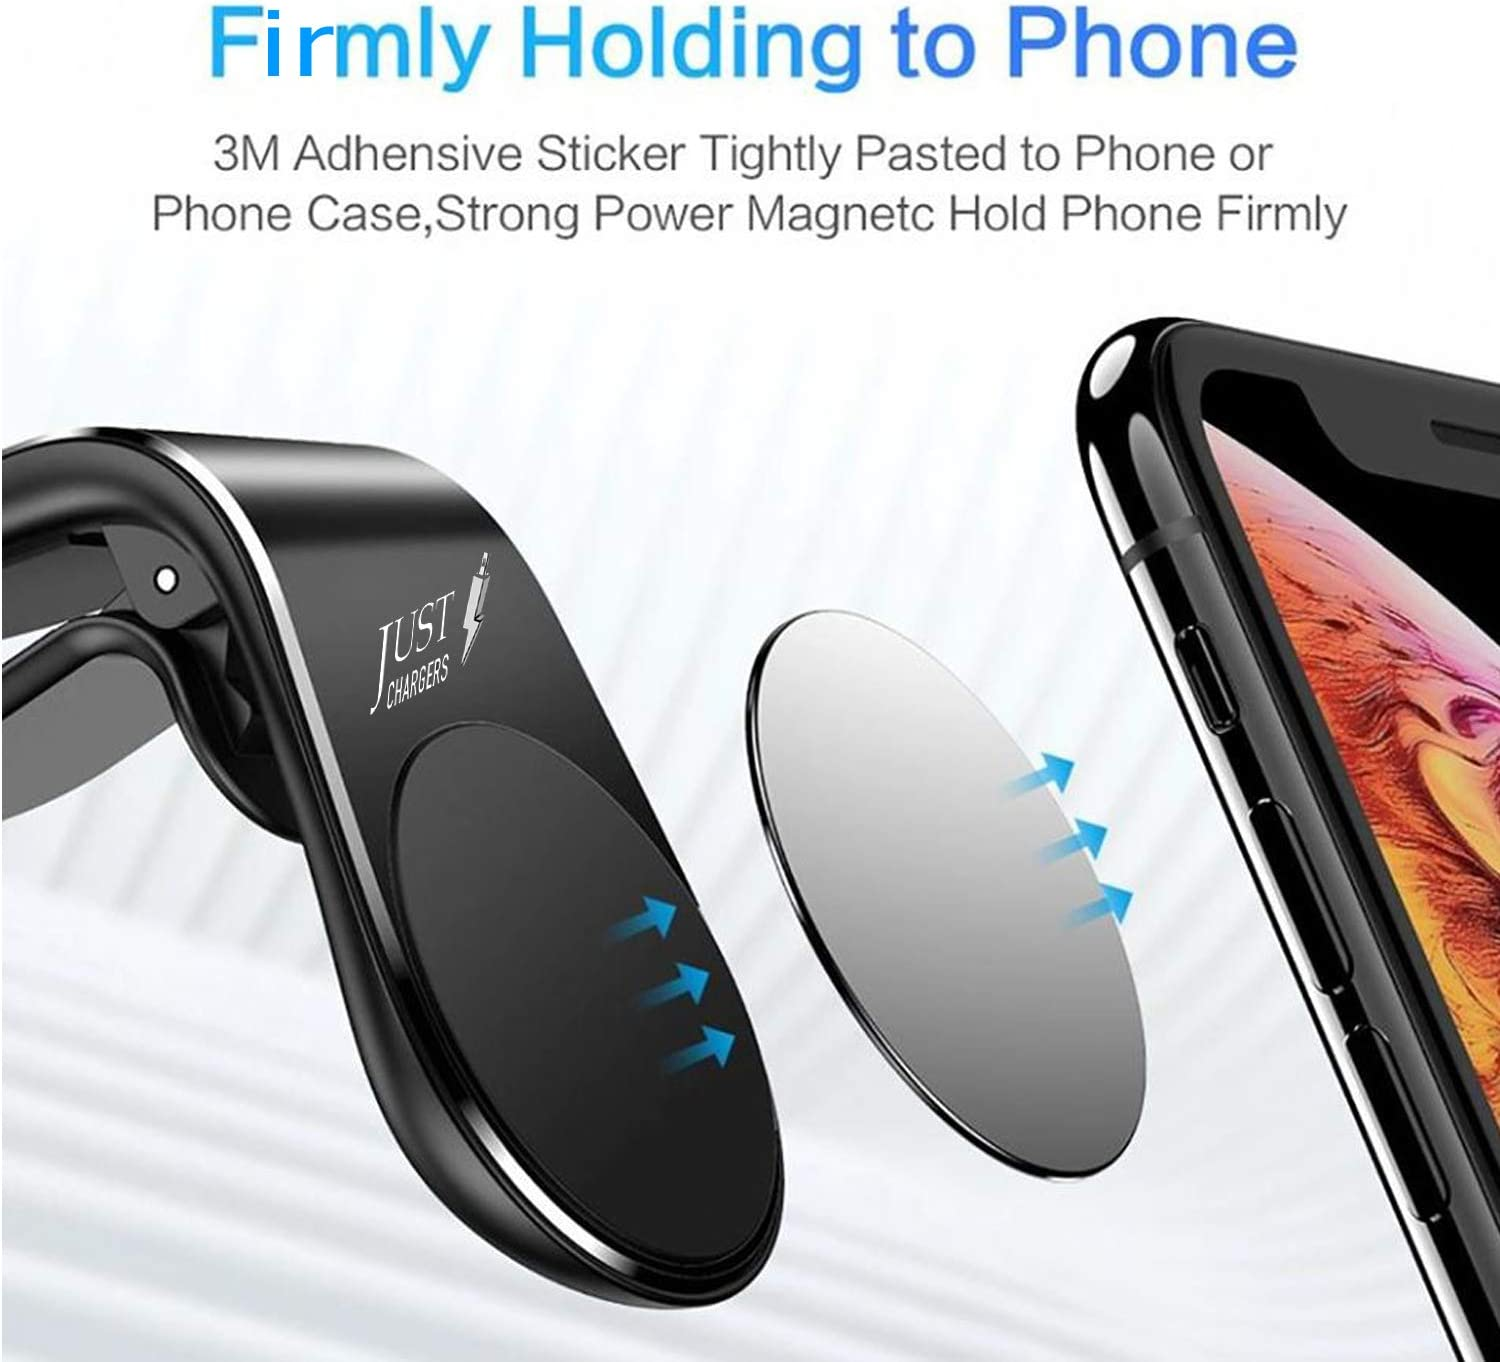 Magnetic Car Mount for Cell Phones with Universal Cell Phone Compatibility iPhone Vent Mount Compatible with All Smartphone and Tablets 5 Strong Magnets and Connects to Air Vent by Justcharger